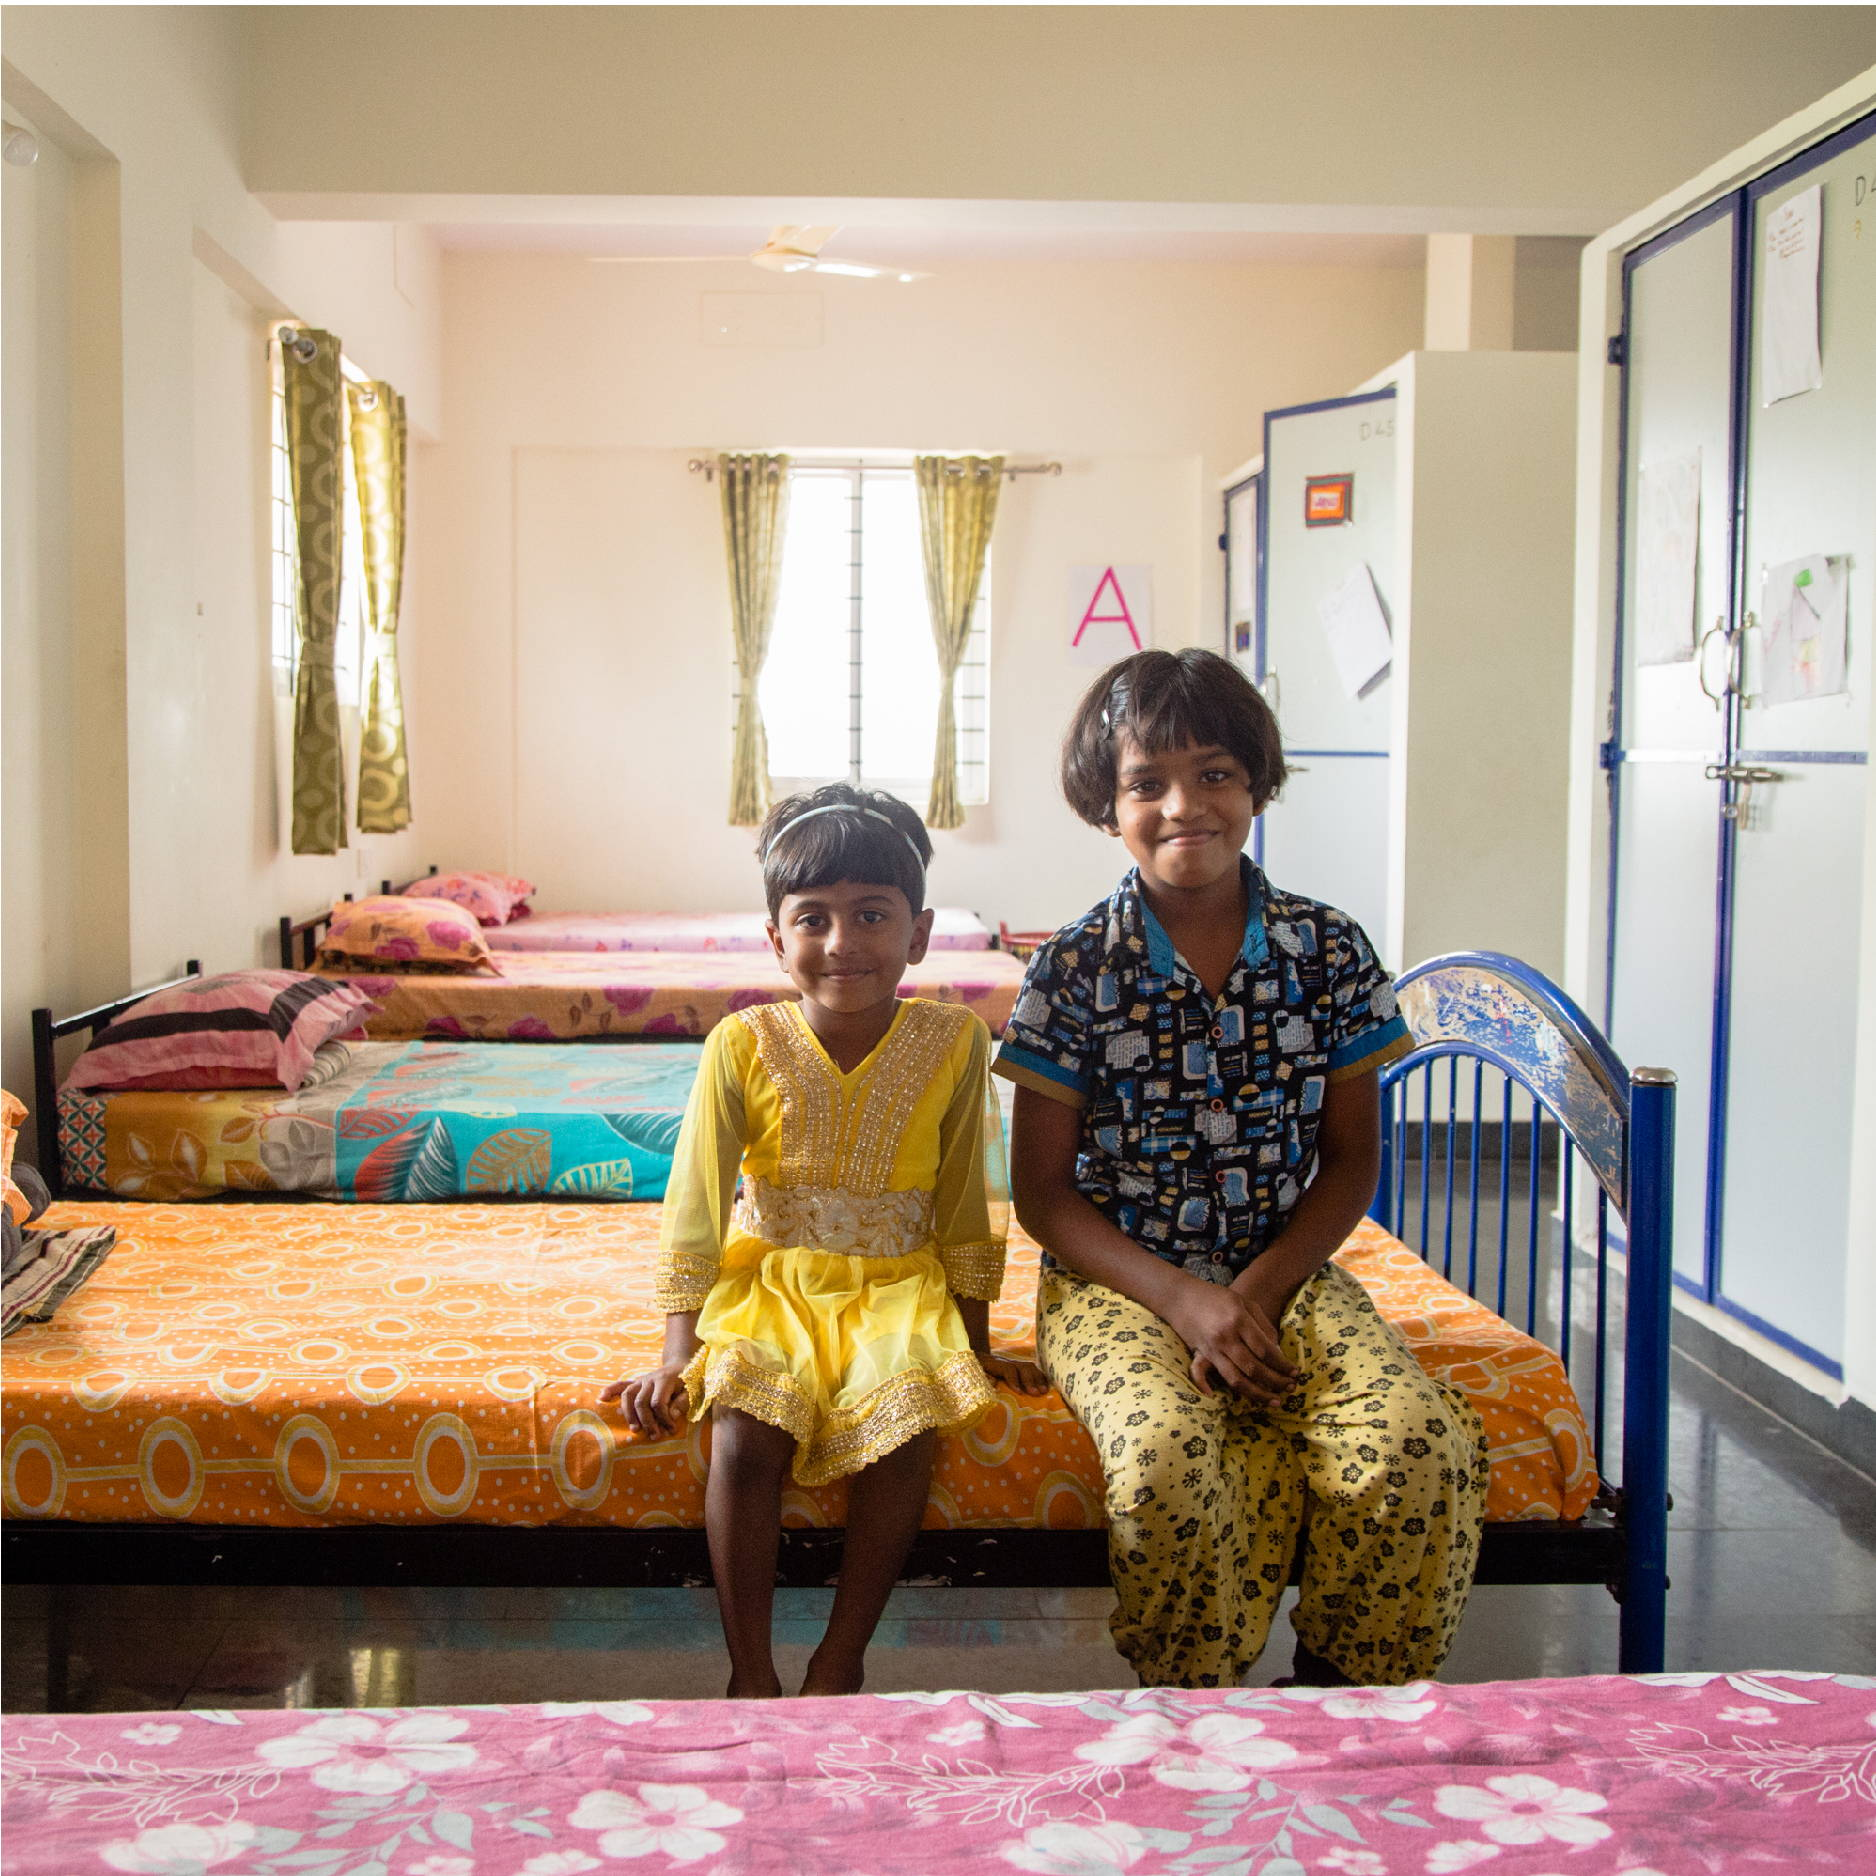 Two Indian girls sit on their beds in a children's home in Bangalore India.